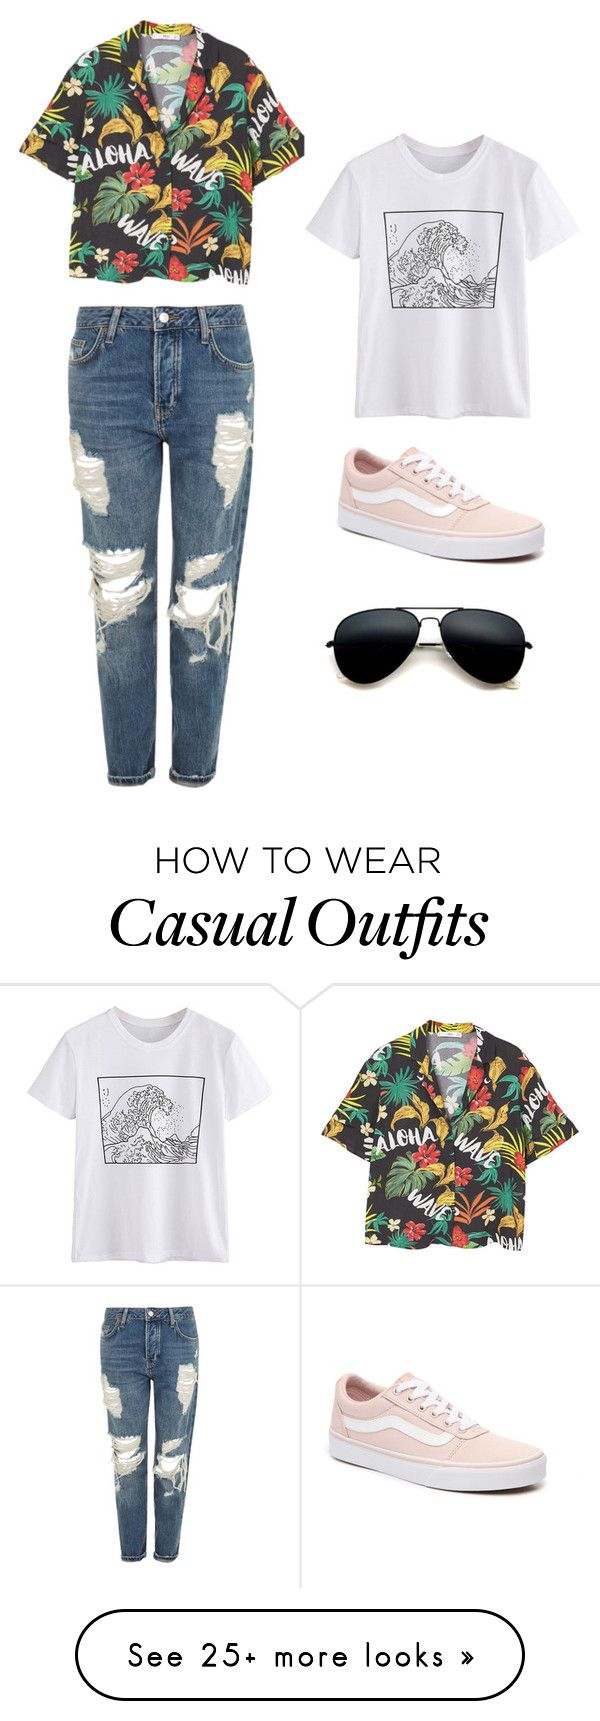 """Happiness Comes in Waves"" by riley-specht on Polyvore featuring MANGO, Topshop, Vans, casualoutfit, women, polyvorefashion and polyvoreset"